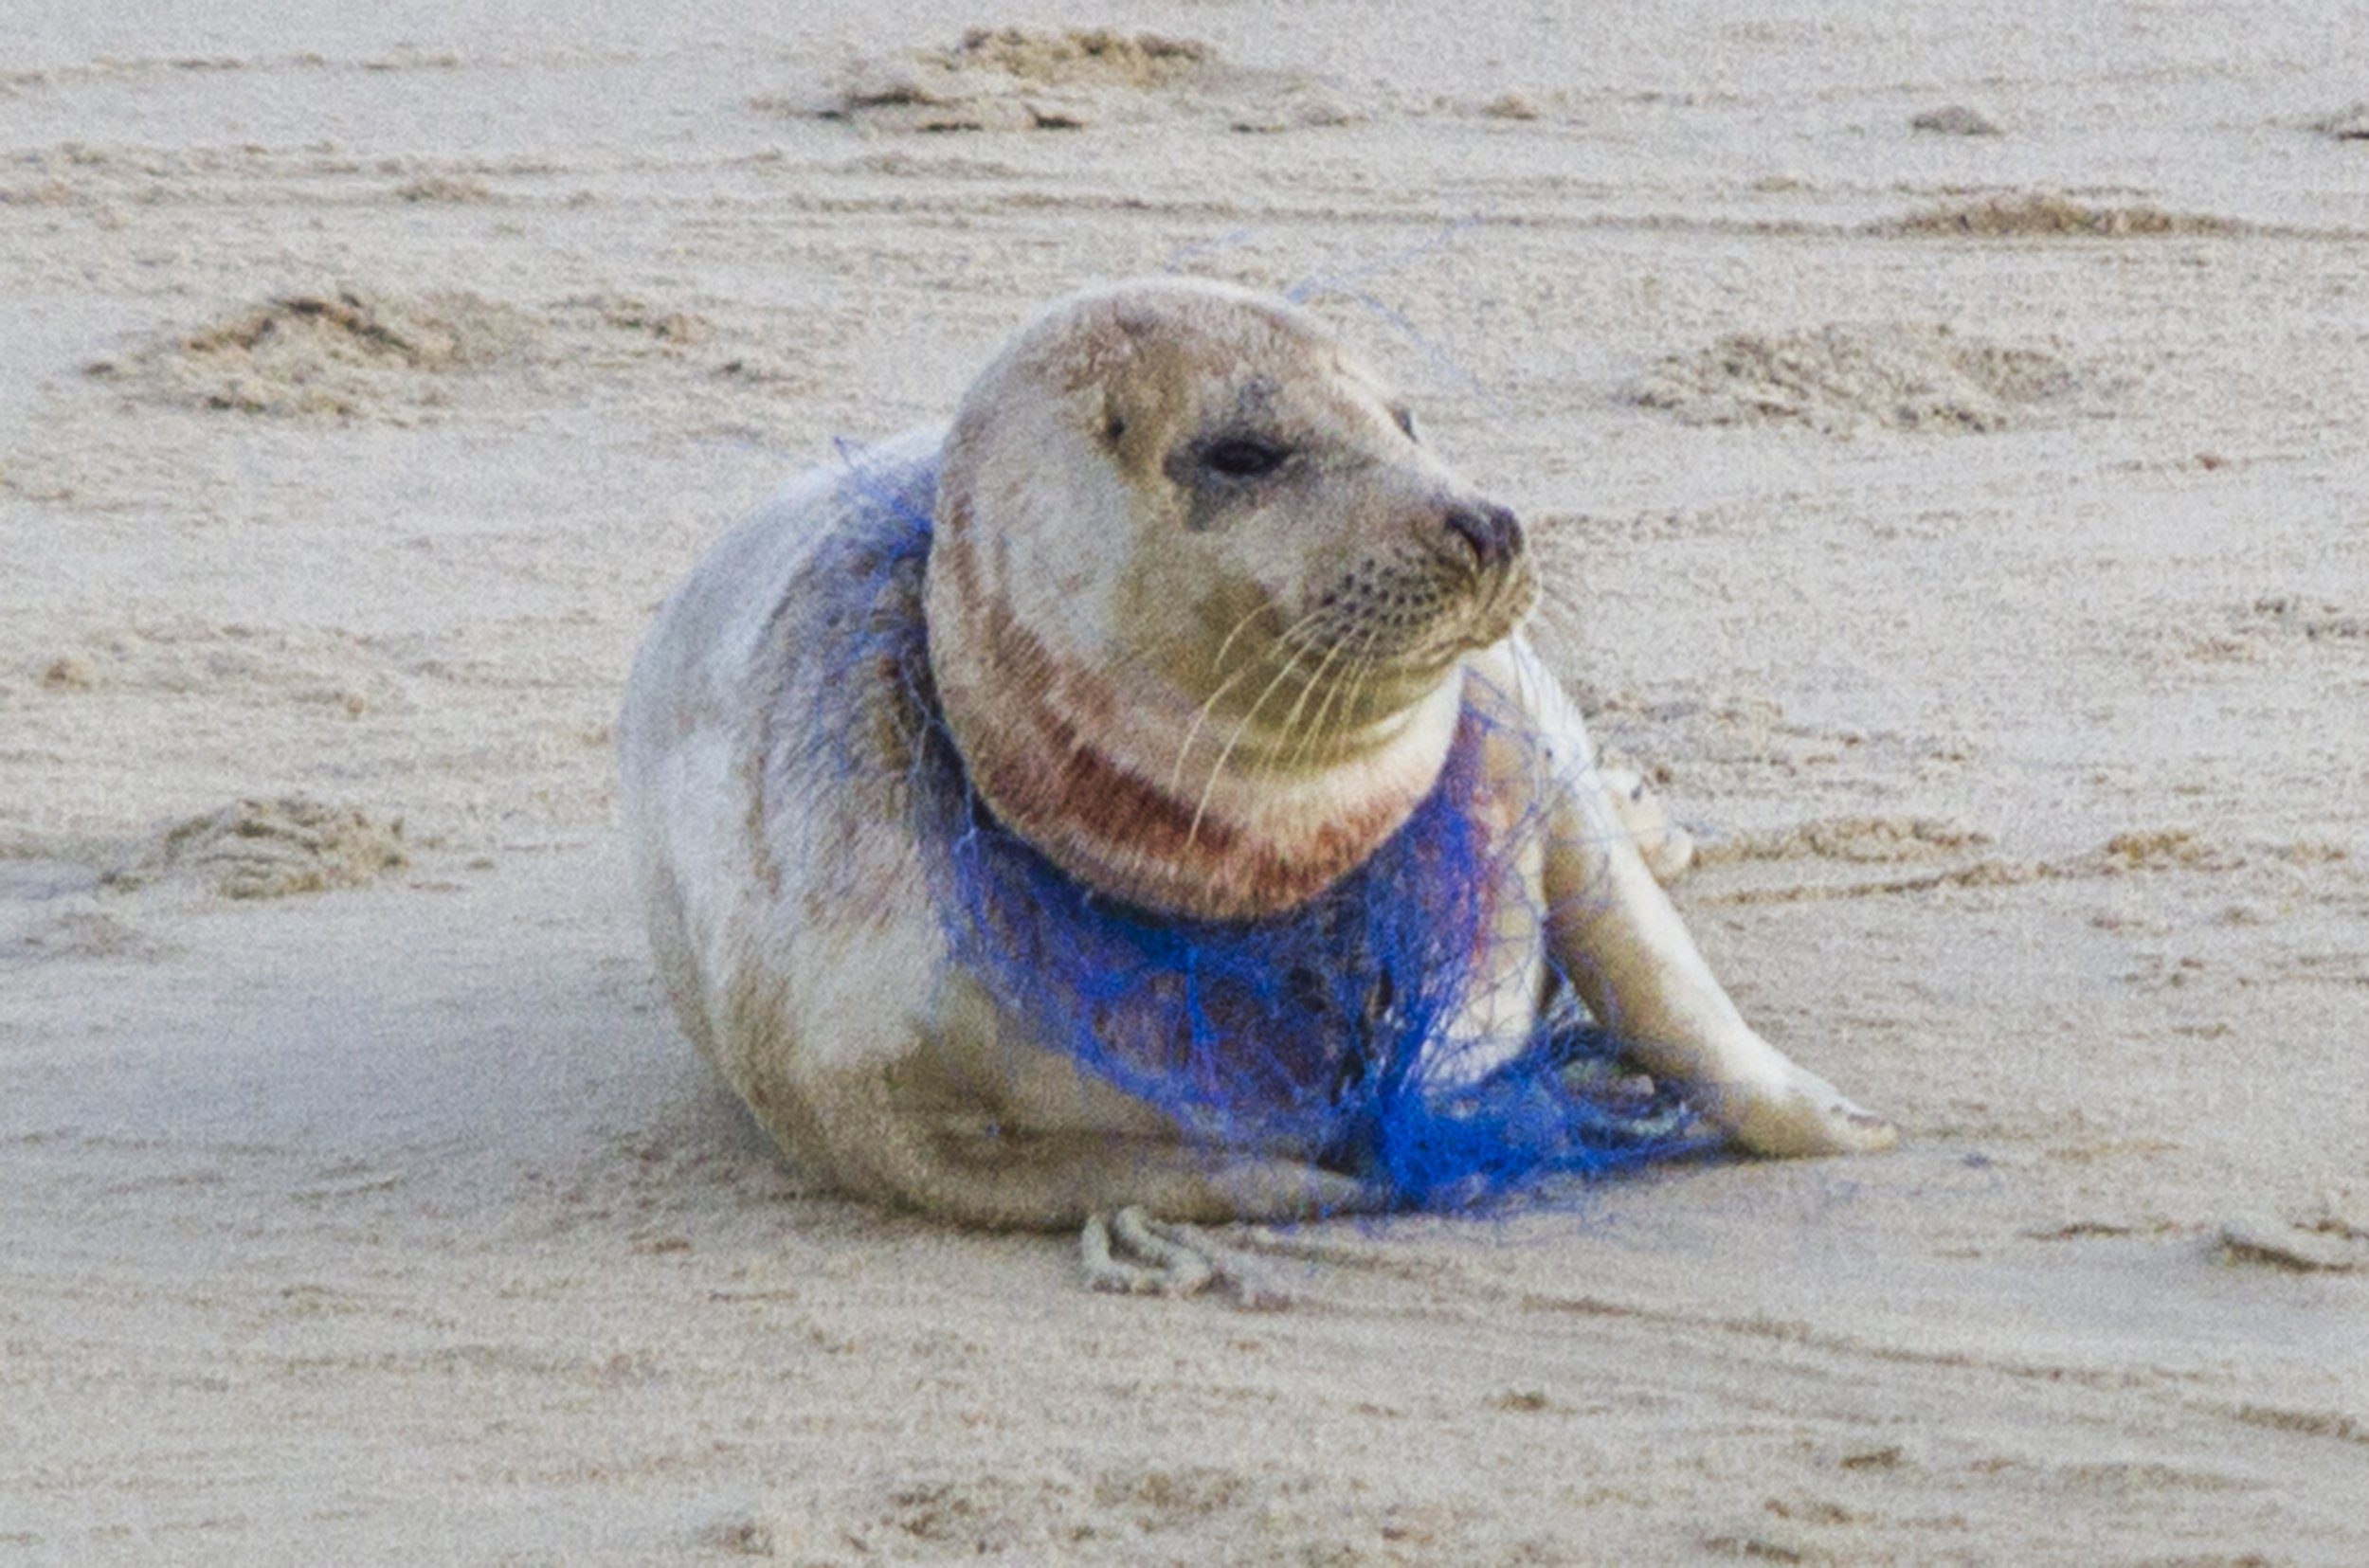 - Picture of the blooded seal on Winterton-on-Sea with netting round it neck. TRIANGLE NEWS 0203 176 5581 // contact@trianglenews.co.uk By Rosaleen Fenton A distressing photo has emerged of a bloodied female seal found on the Norfolk coast with plastic netting wrapped tightly around its neck. Volunteers are attempting to rescue the Atlantic Grey who is becoming weaker and weaker but her future remains uncertain. Local photographer Paul Macro took the picture on a long zoom lens at Winterton-on-Sea and urged people to pick up discarded plastic along the coast. *Full copy filed via the wires/Triangle News*